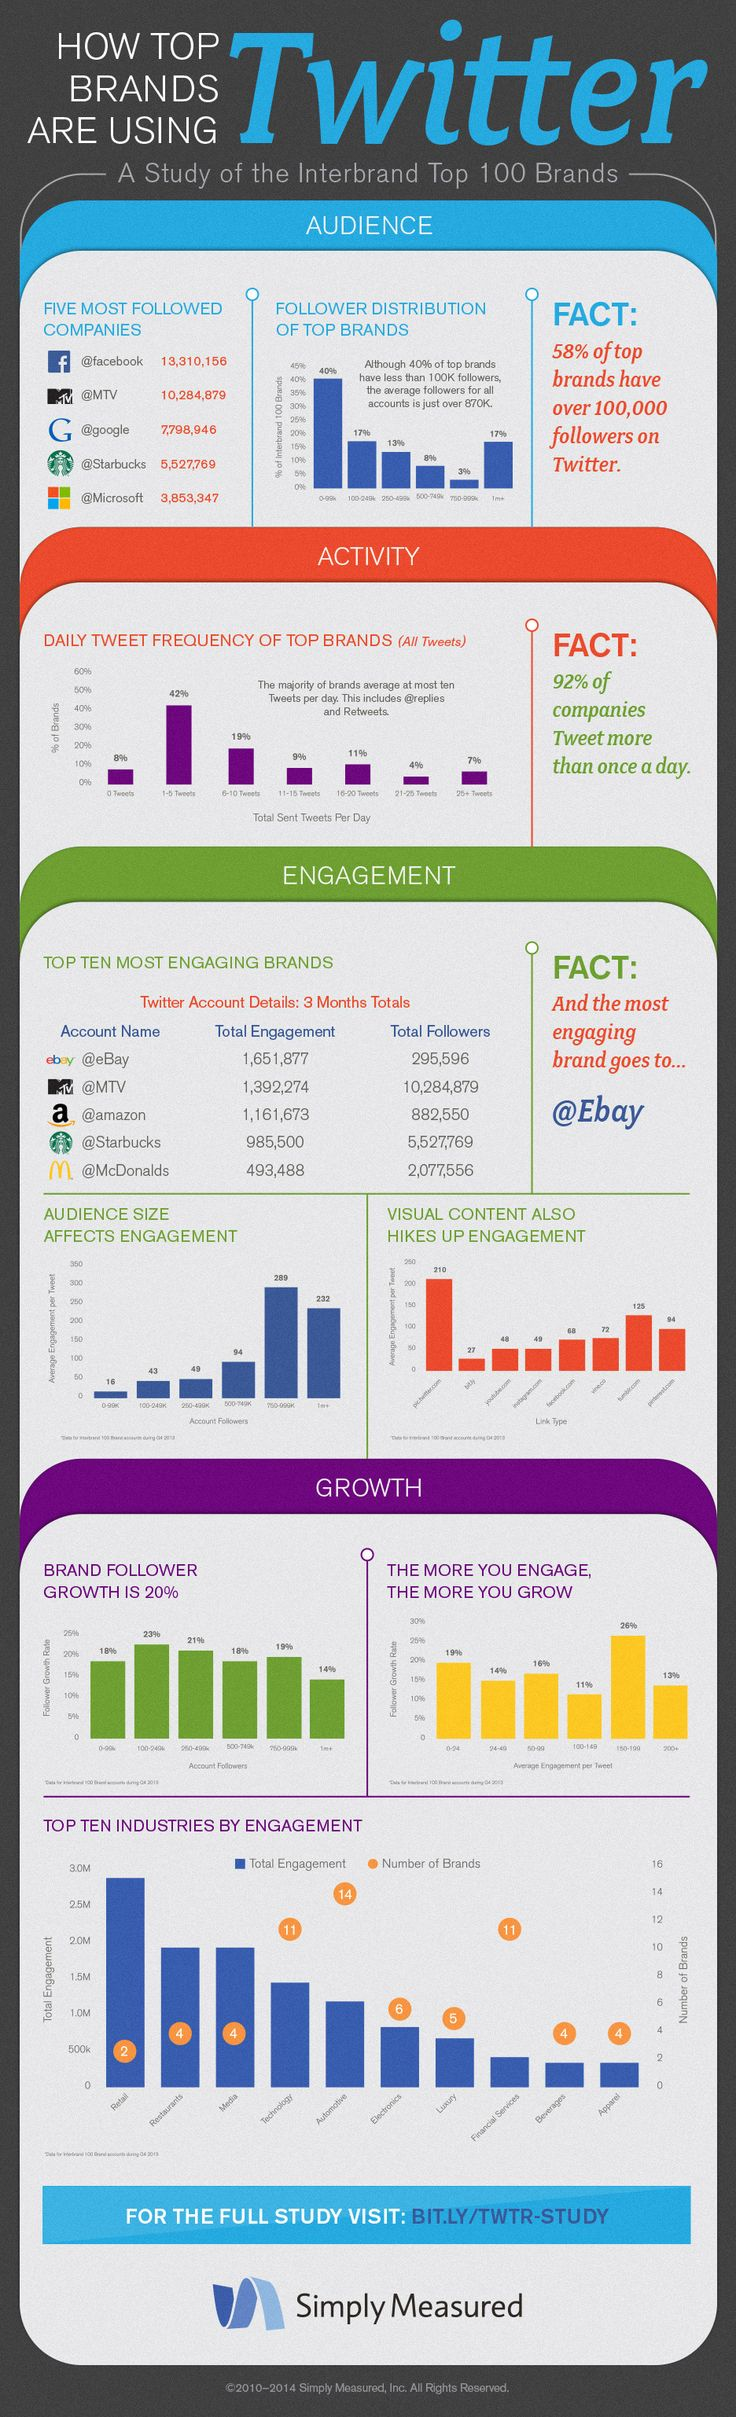 These Are the Most Engaging Brands on Twitter (Infographic)